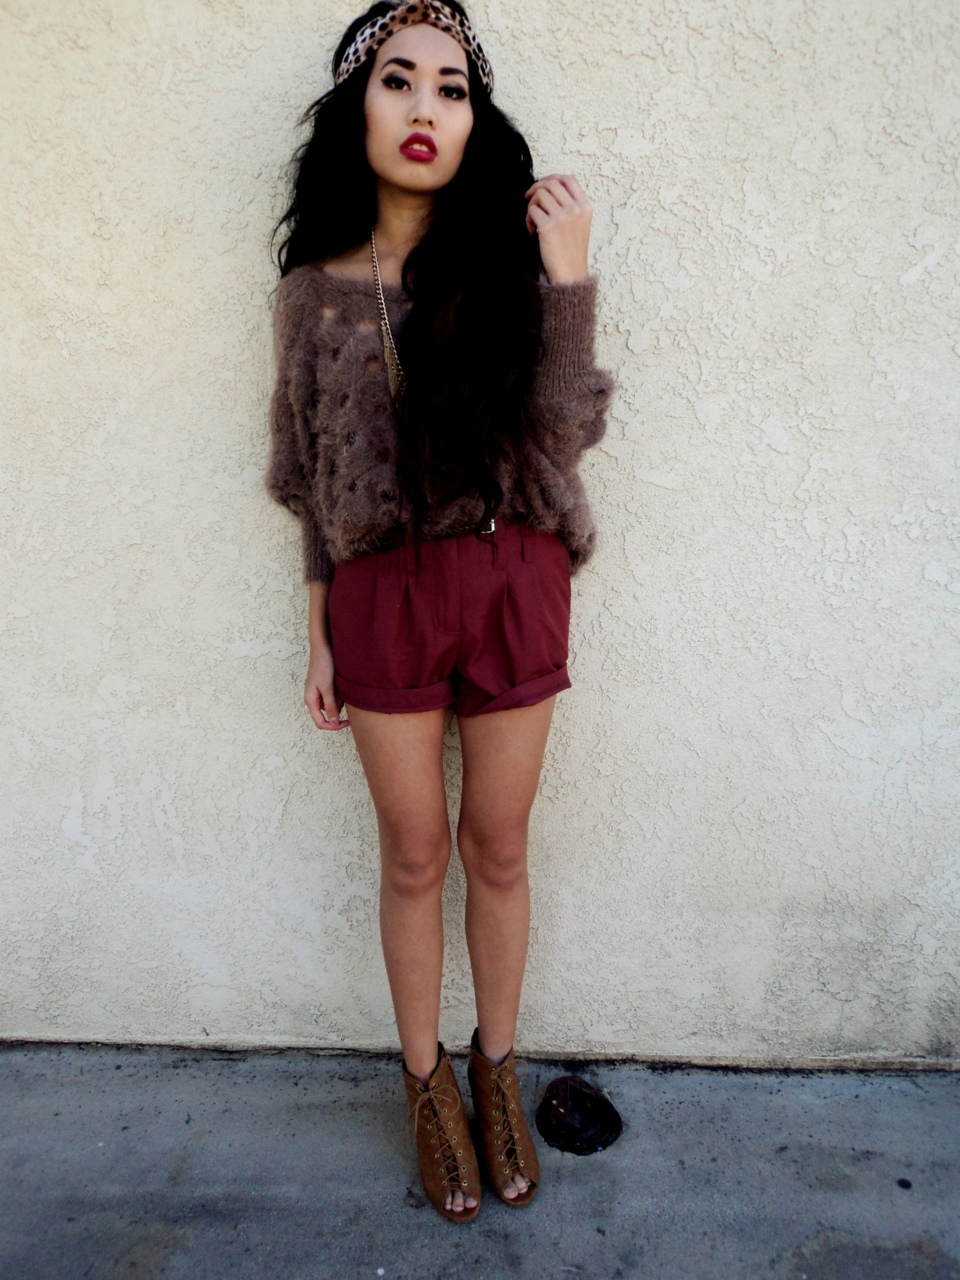 cheetah, cute outfit, fashion, hair, headband